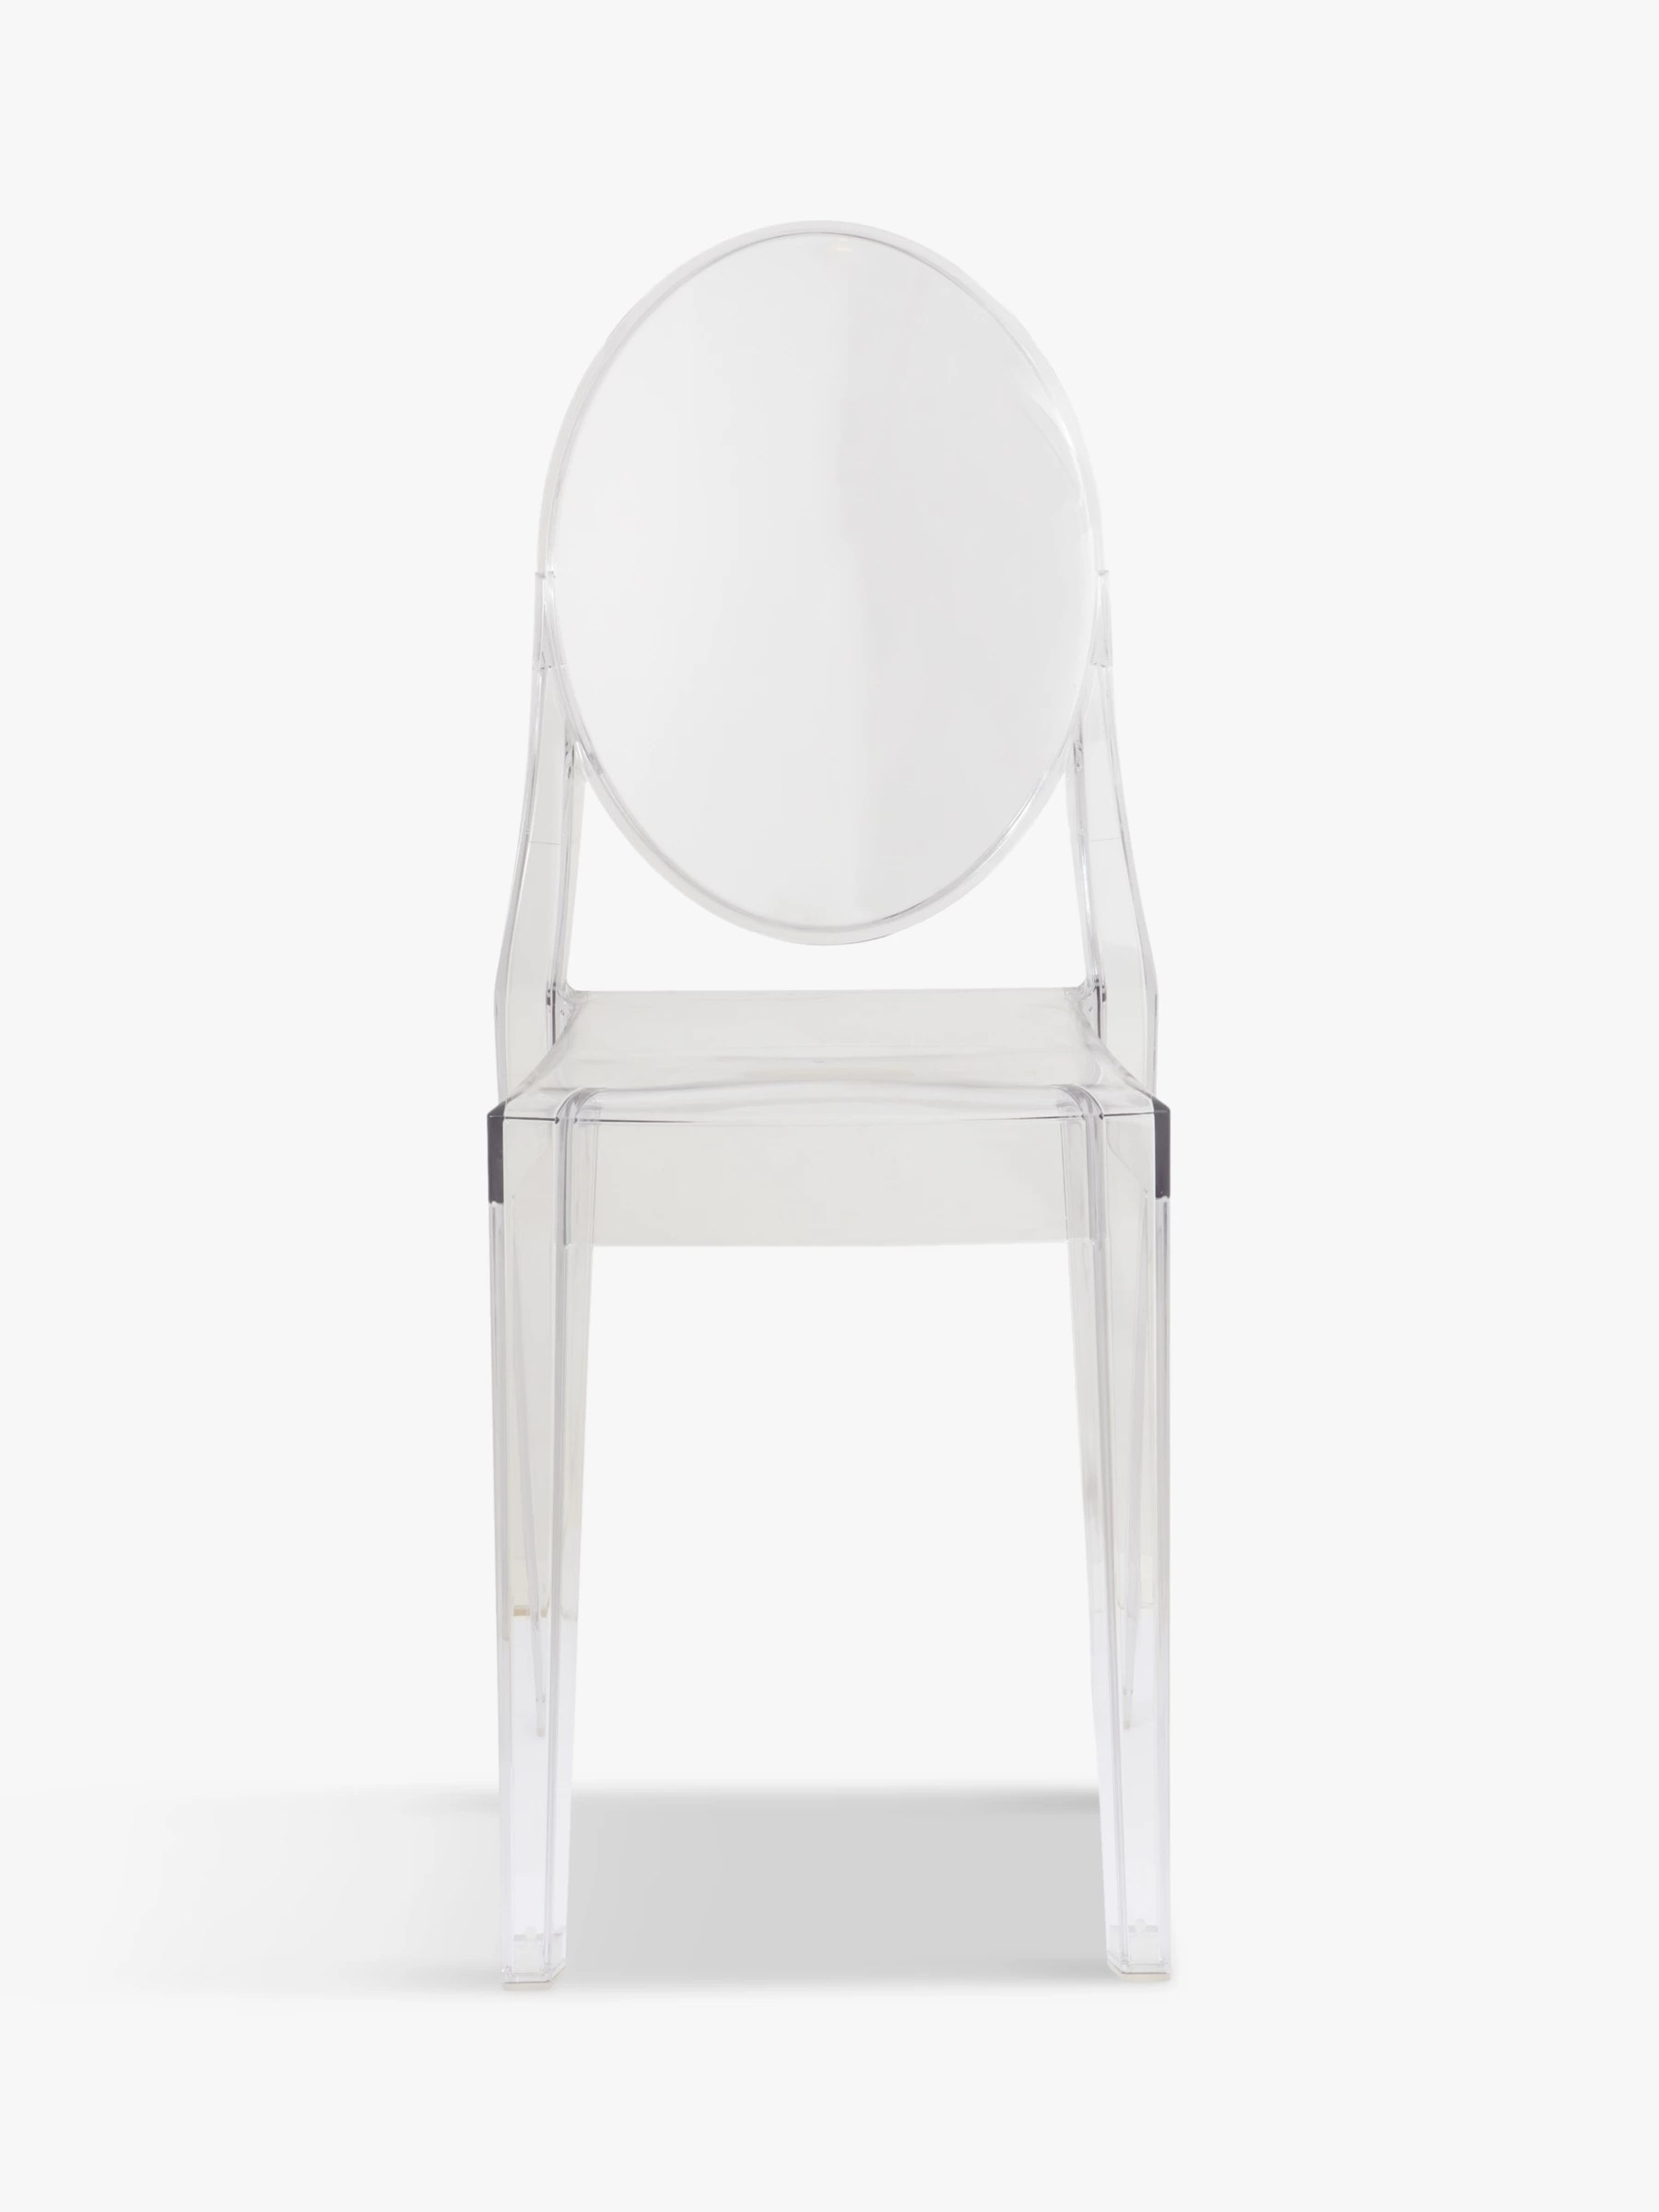 Alinea Louise Revger Philippe Starck Ghost Chair Idée Inspirante